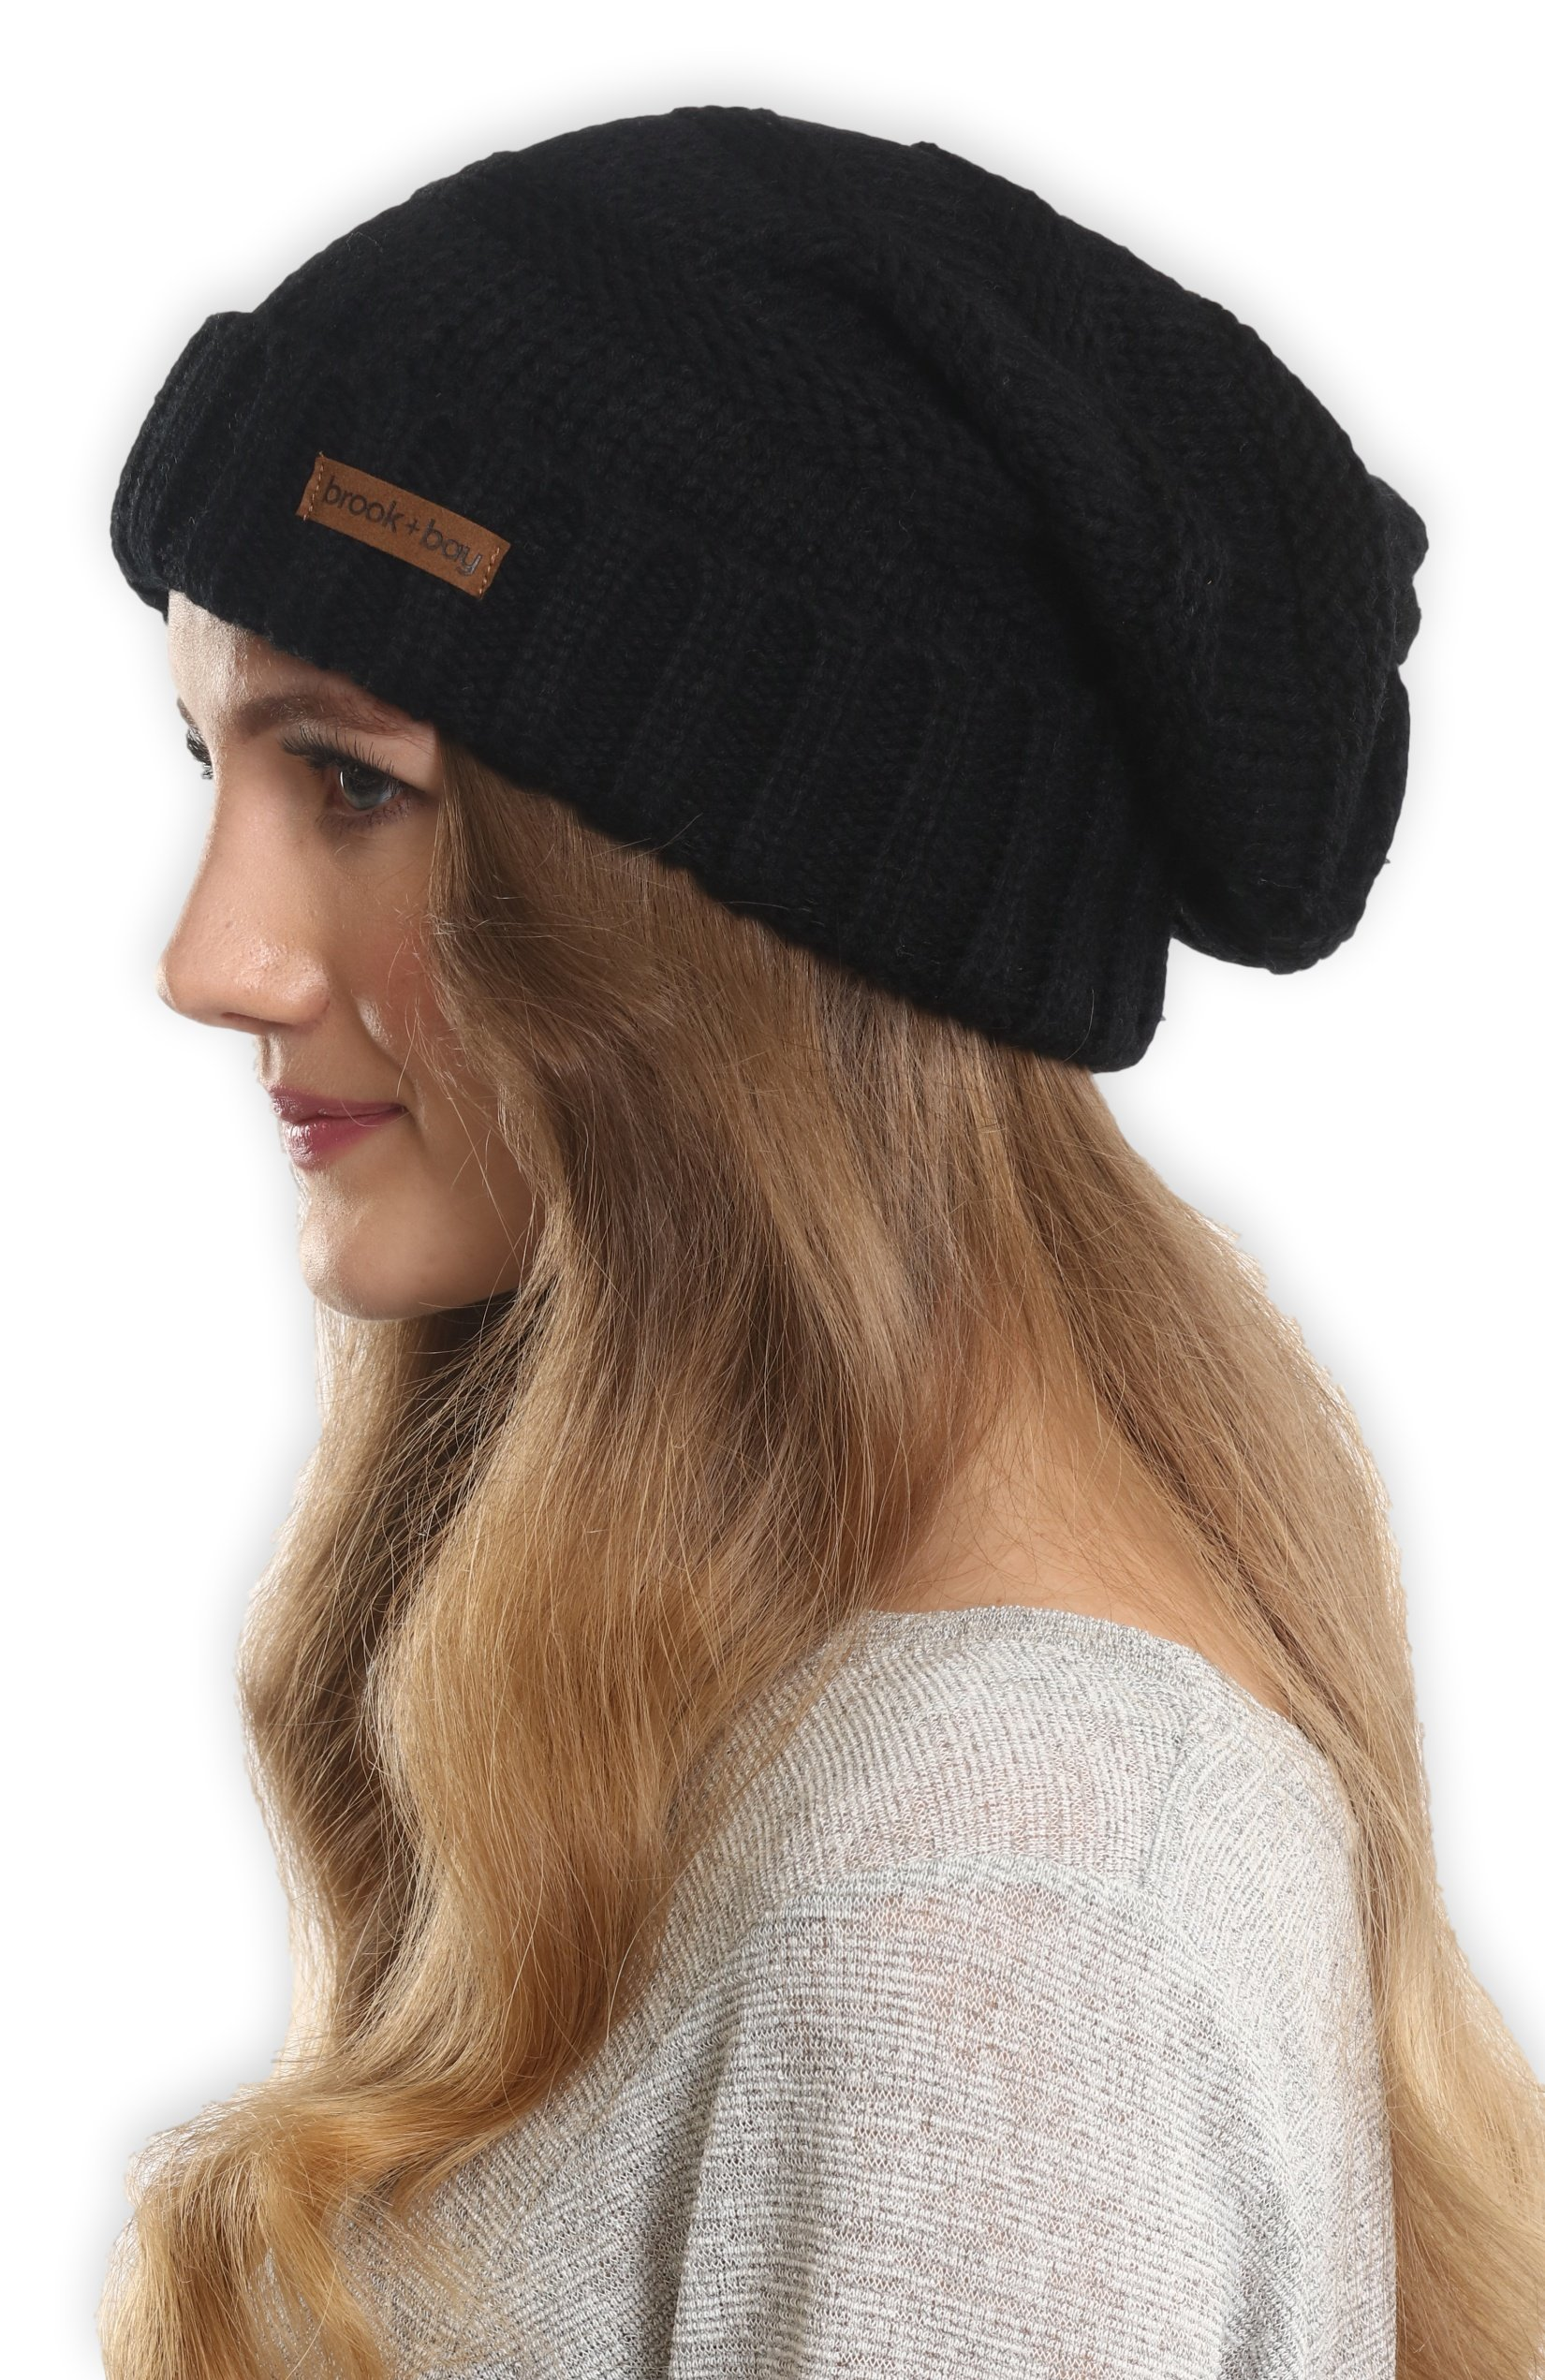 8930167c3a2 Get Quotations · Brook + Bay Slouchy Cable Knit Cuff Beanie - Stay Warm    Stylish - Chunky